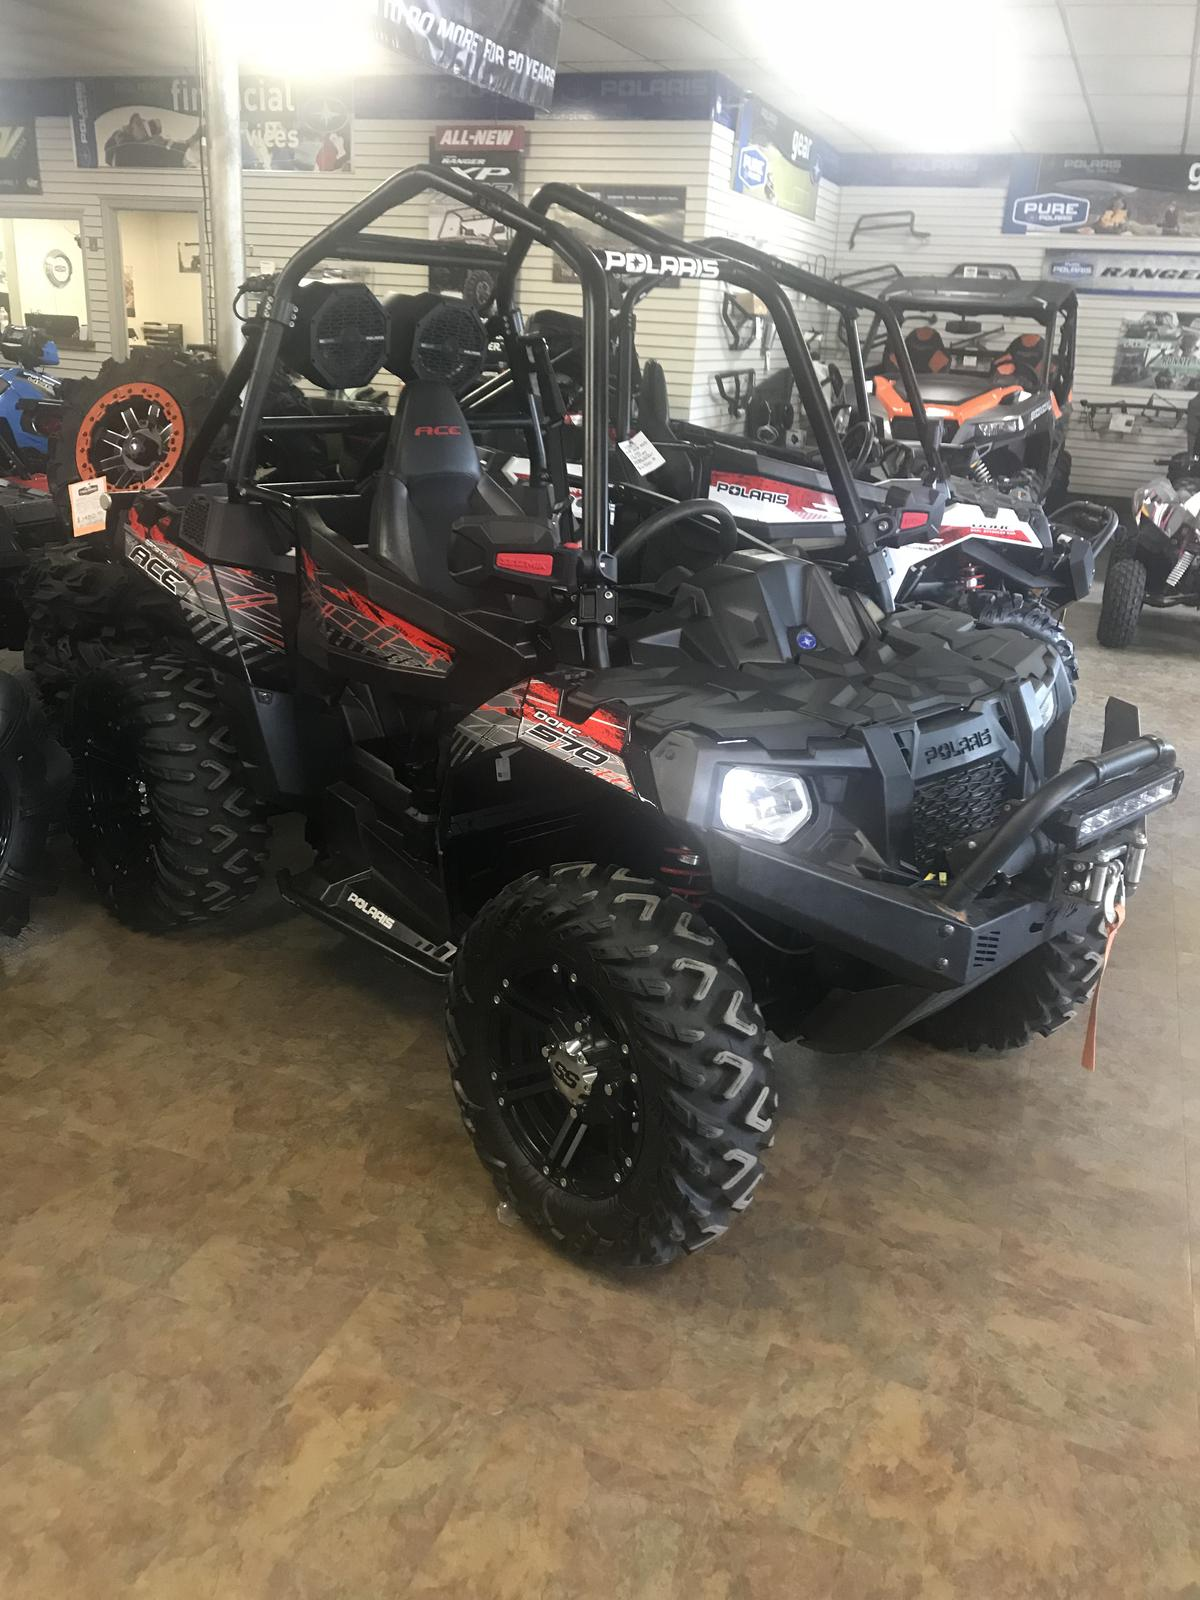 Polaris Ace For Sale >> 2015 Polaris Industries Polaris Ace 570 Sp